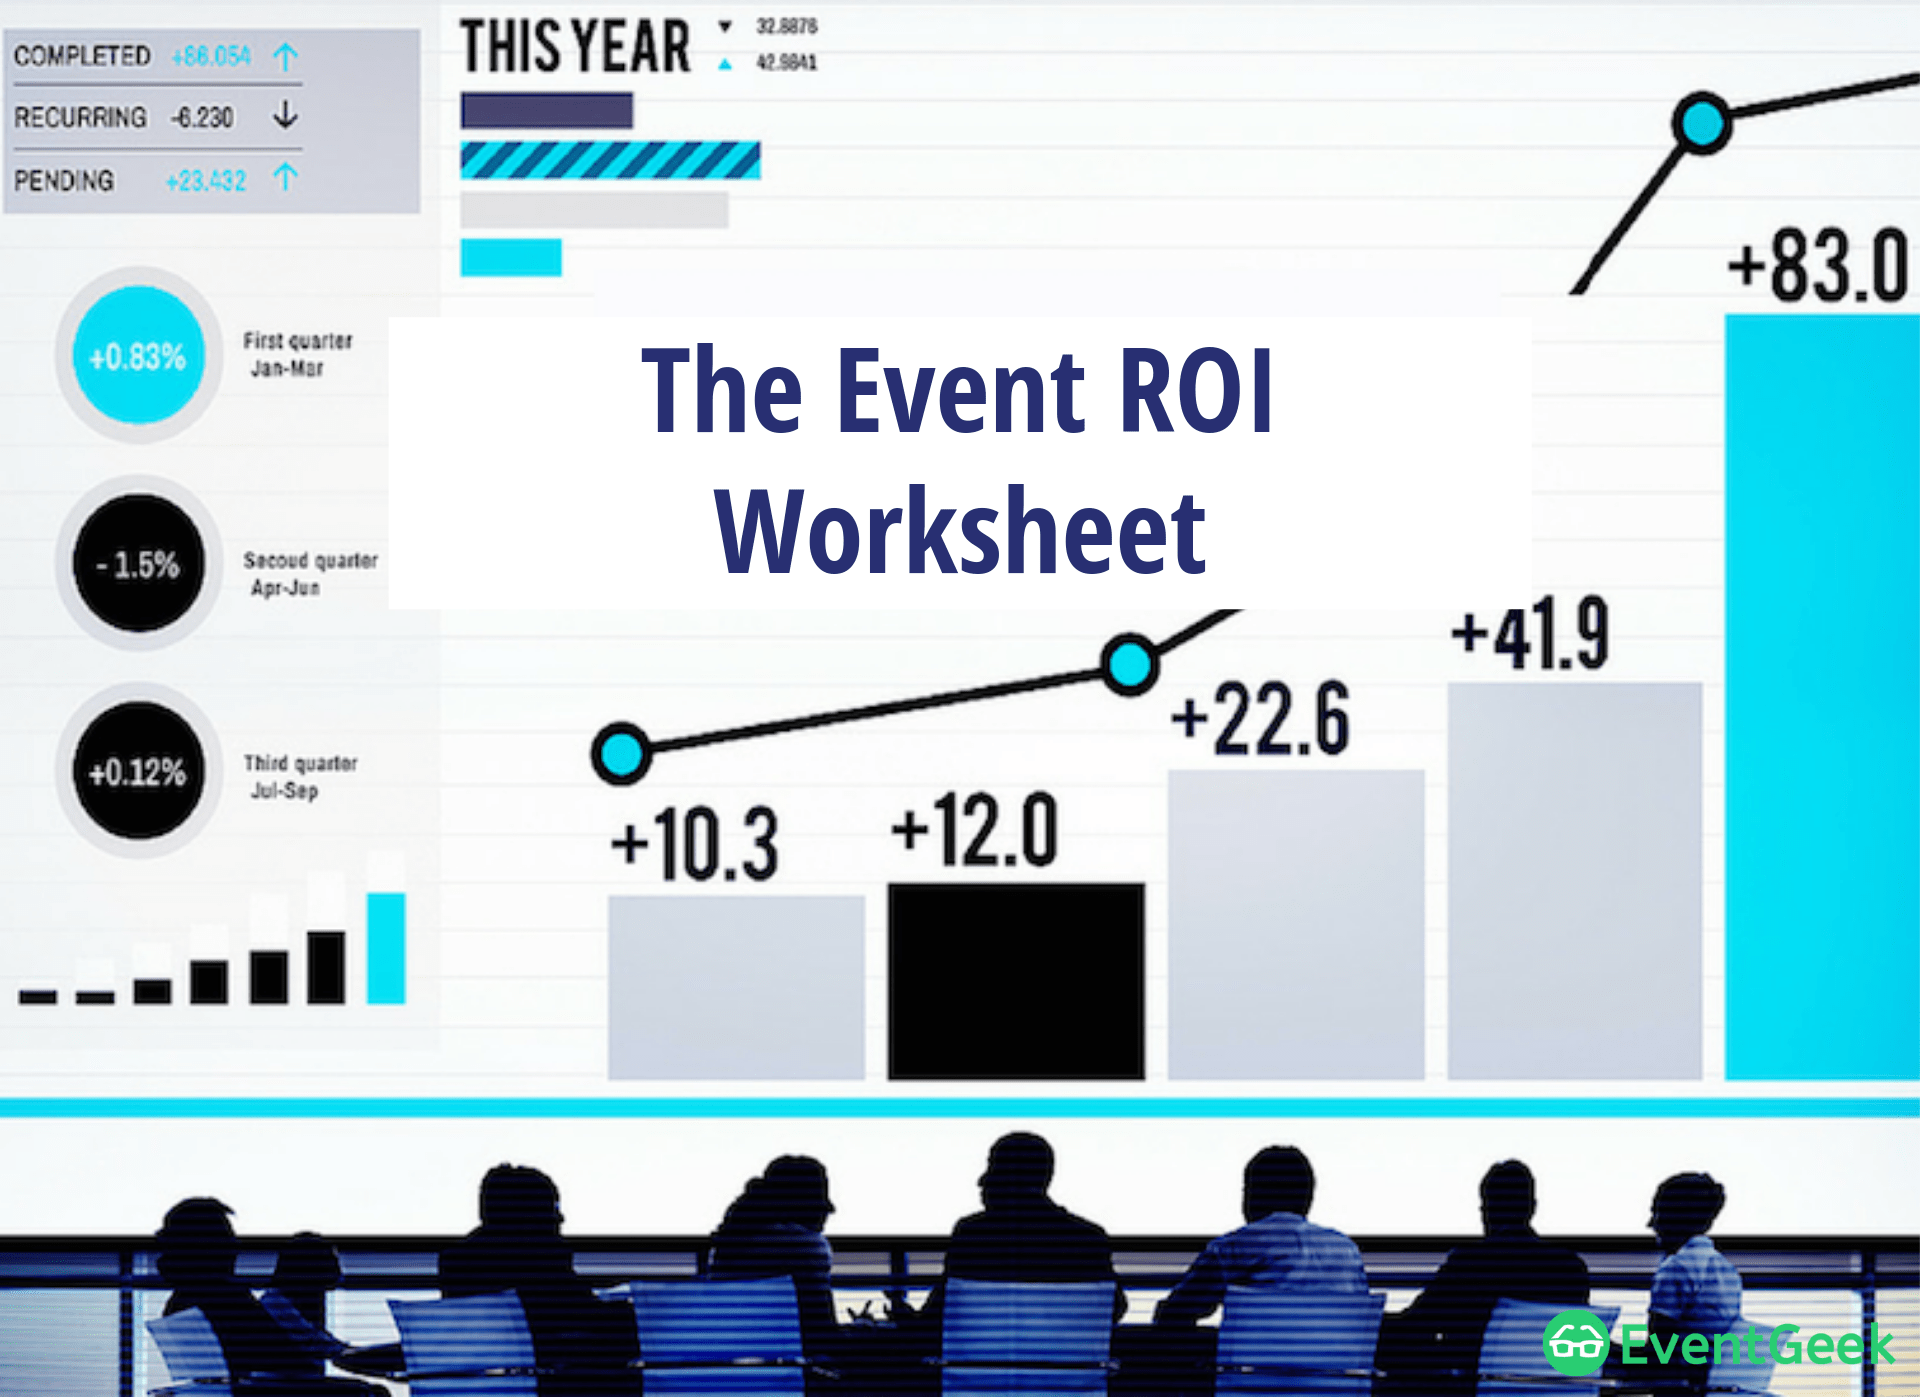 The Event Roi Worksheet